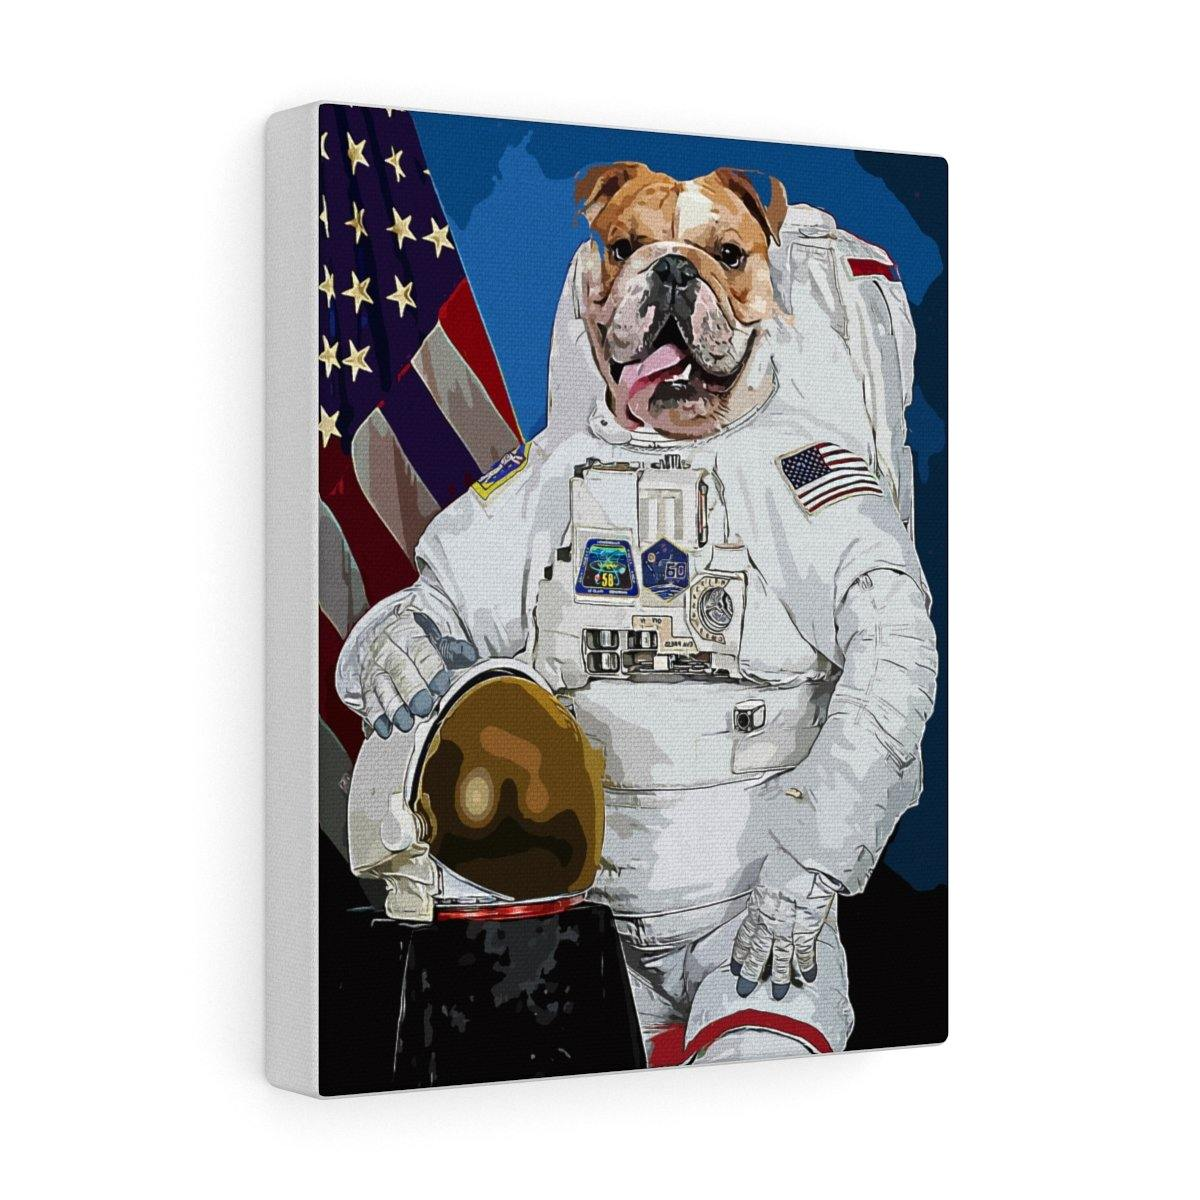 SquishyFacedCrew™ 'The Astronaut' Custom Pet Canvas - SquishyFacedCrew